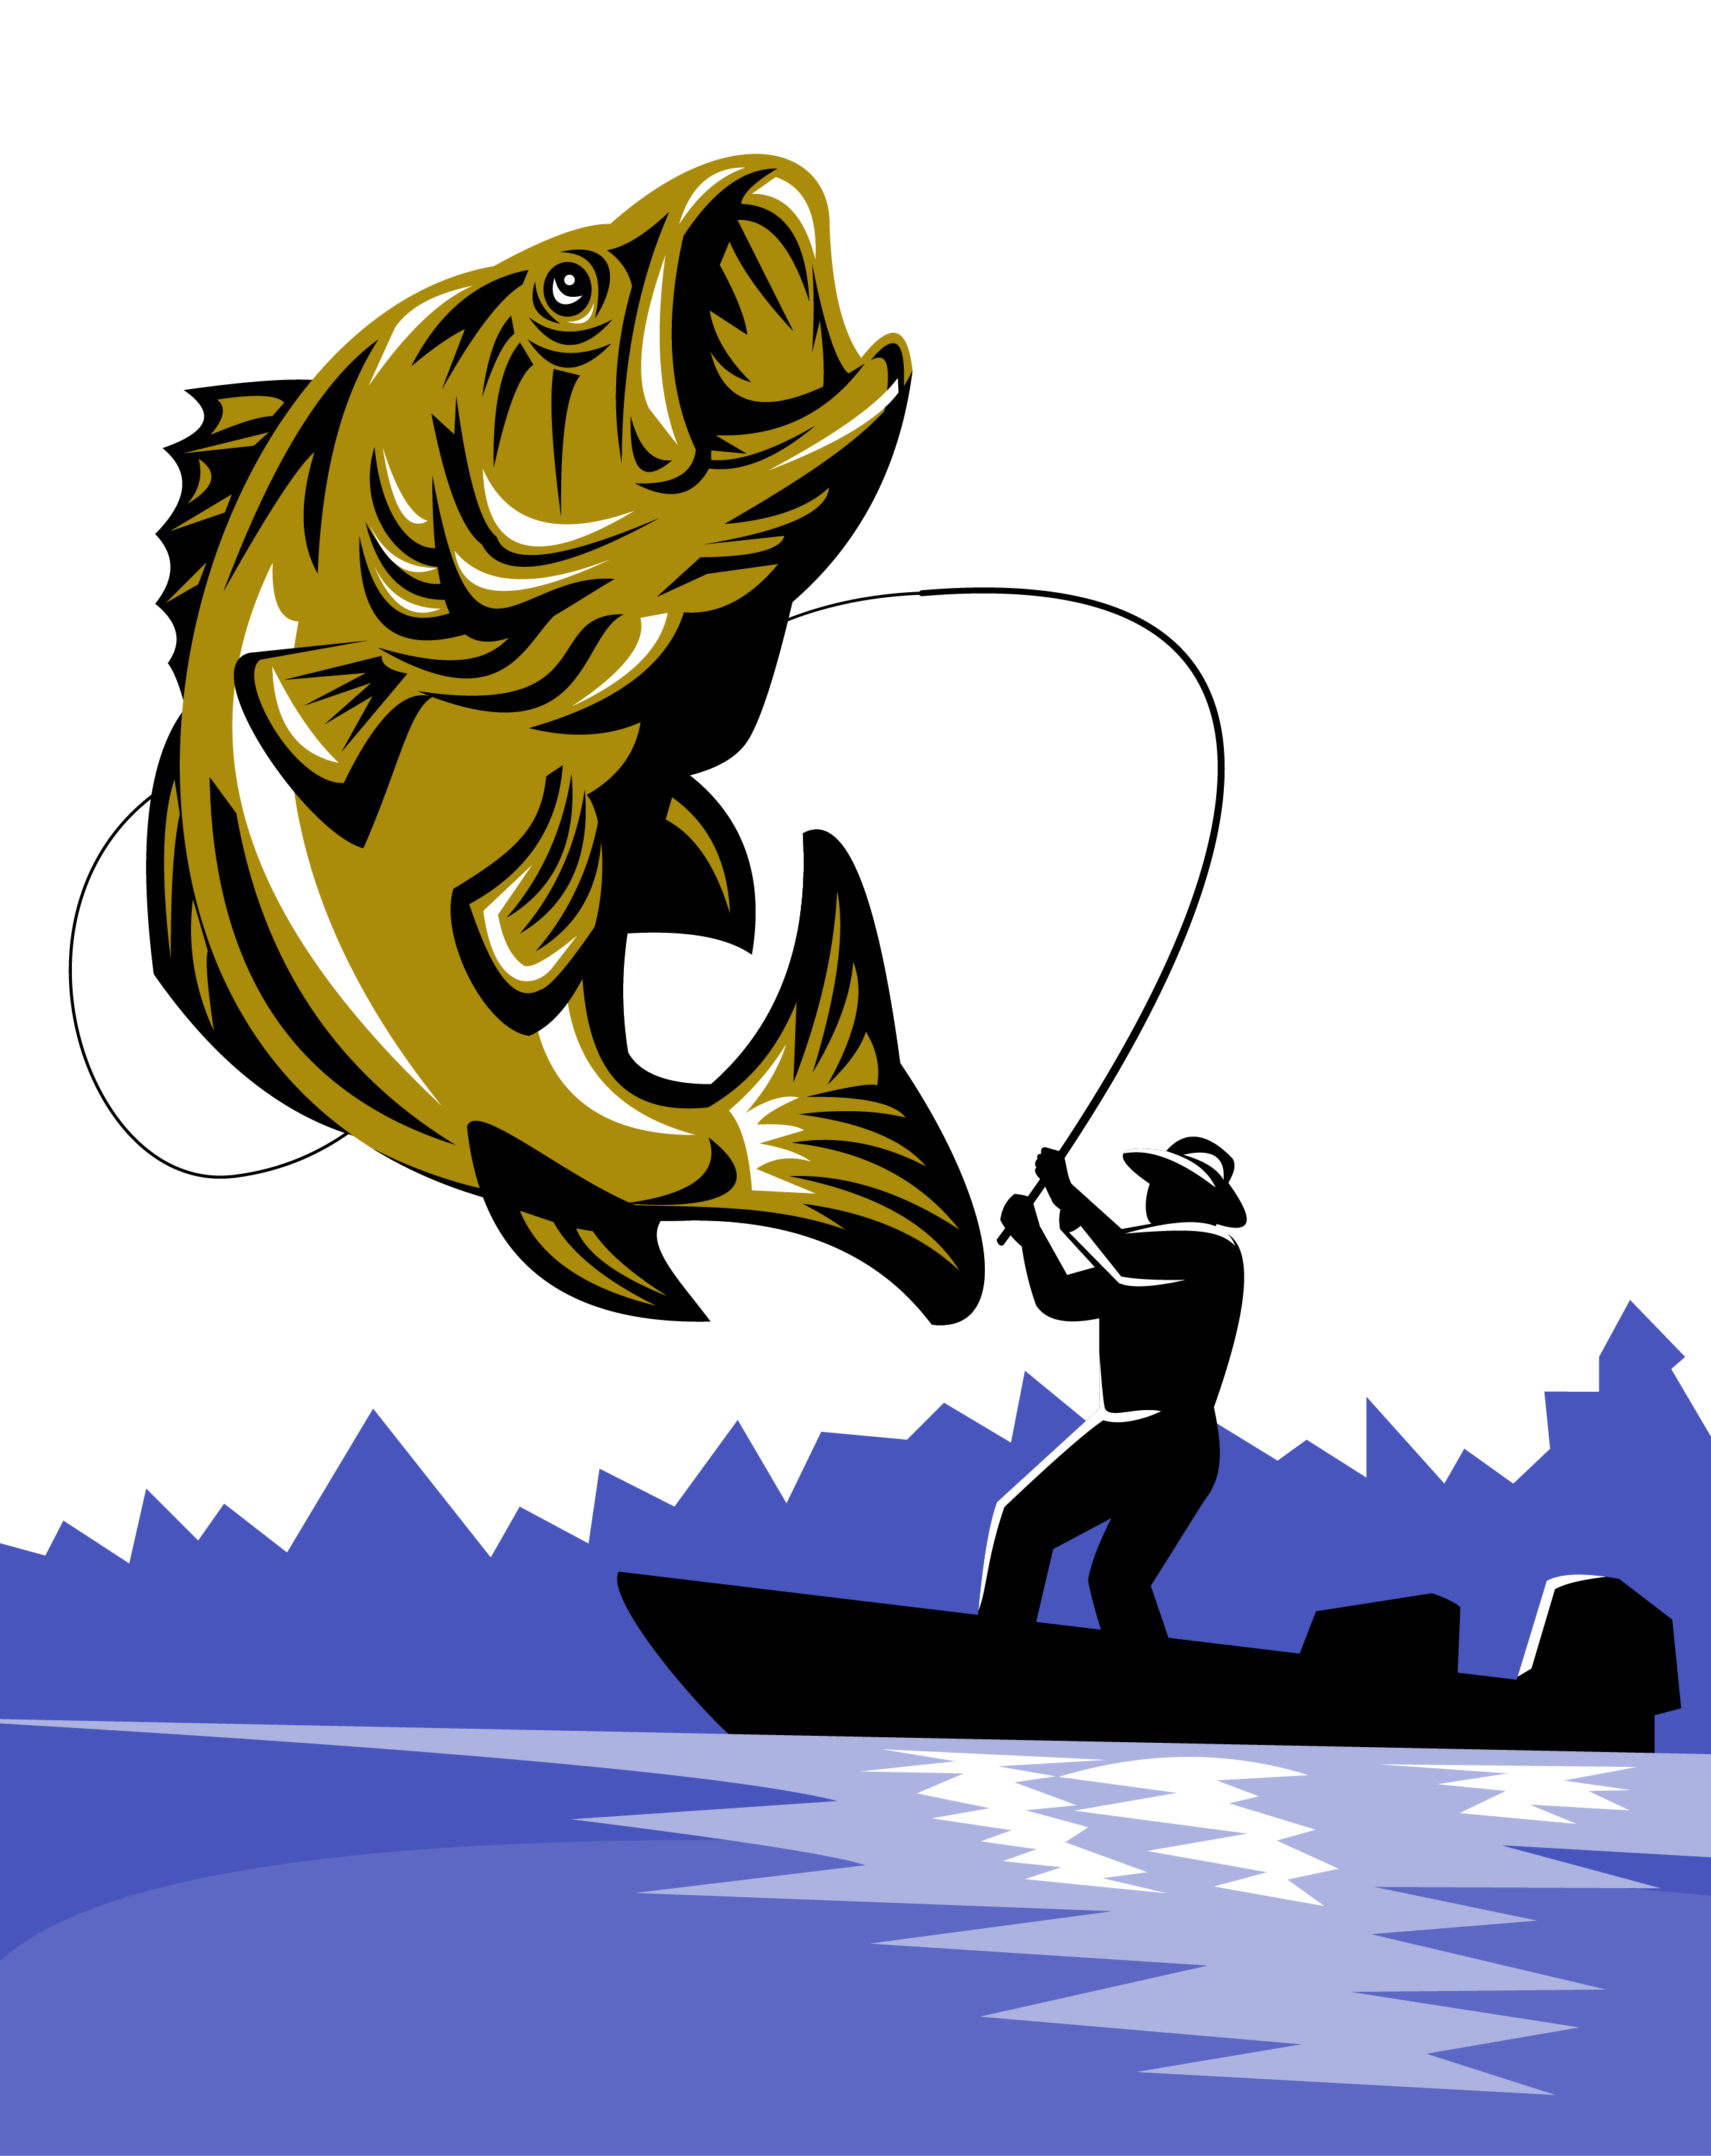 Bass fish clipart png picture royalty free download Bass fishing Fishing rod Fly fishing - Fishing rods 2427*3058 ... picture royalty free download